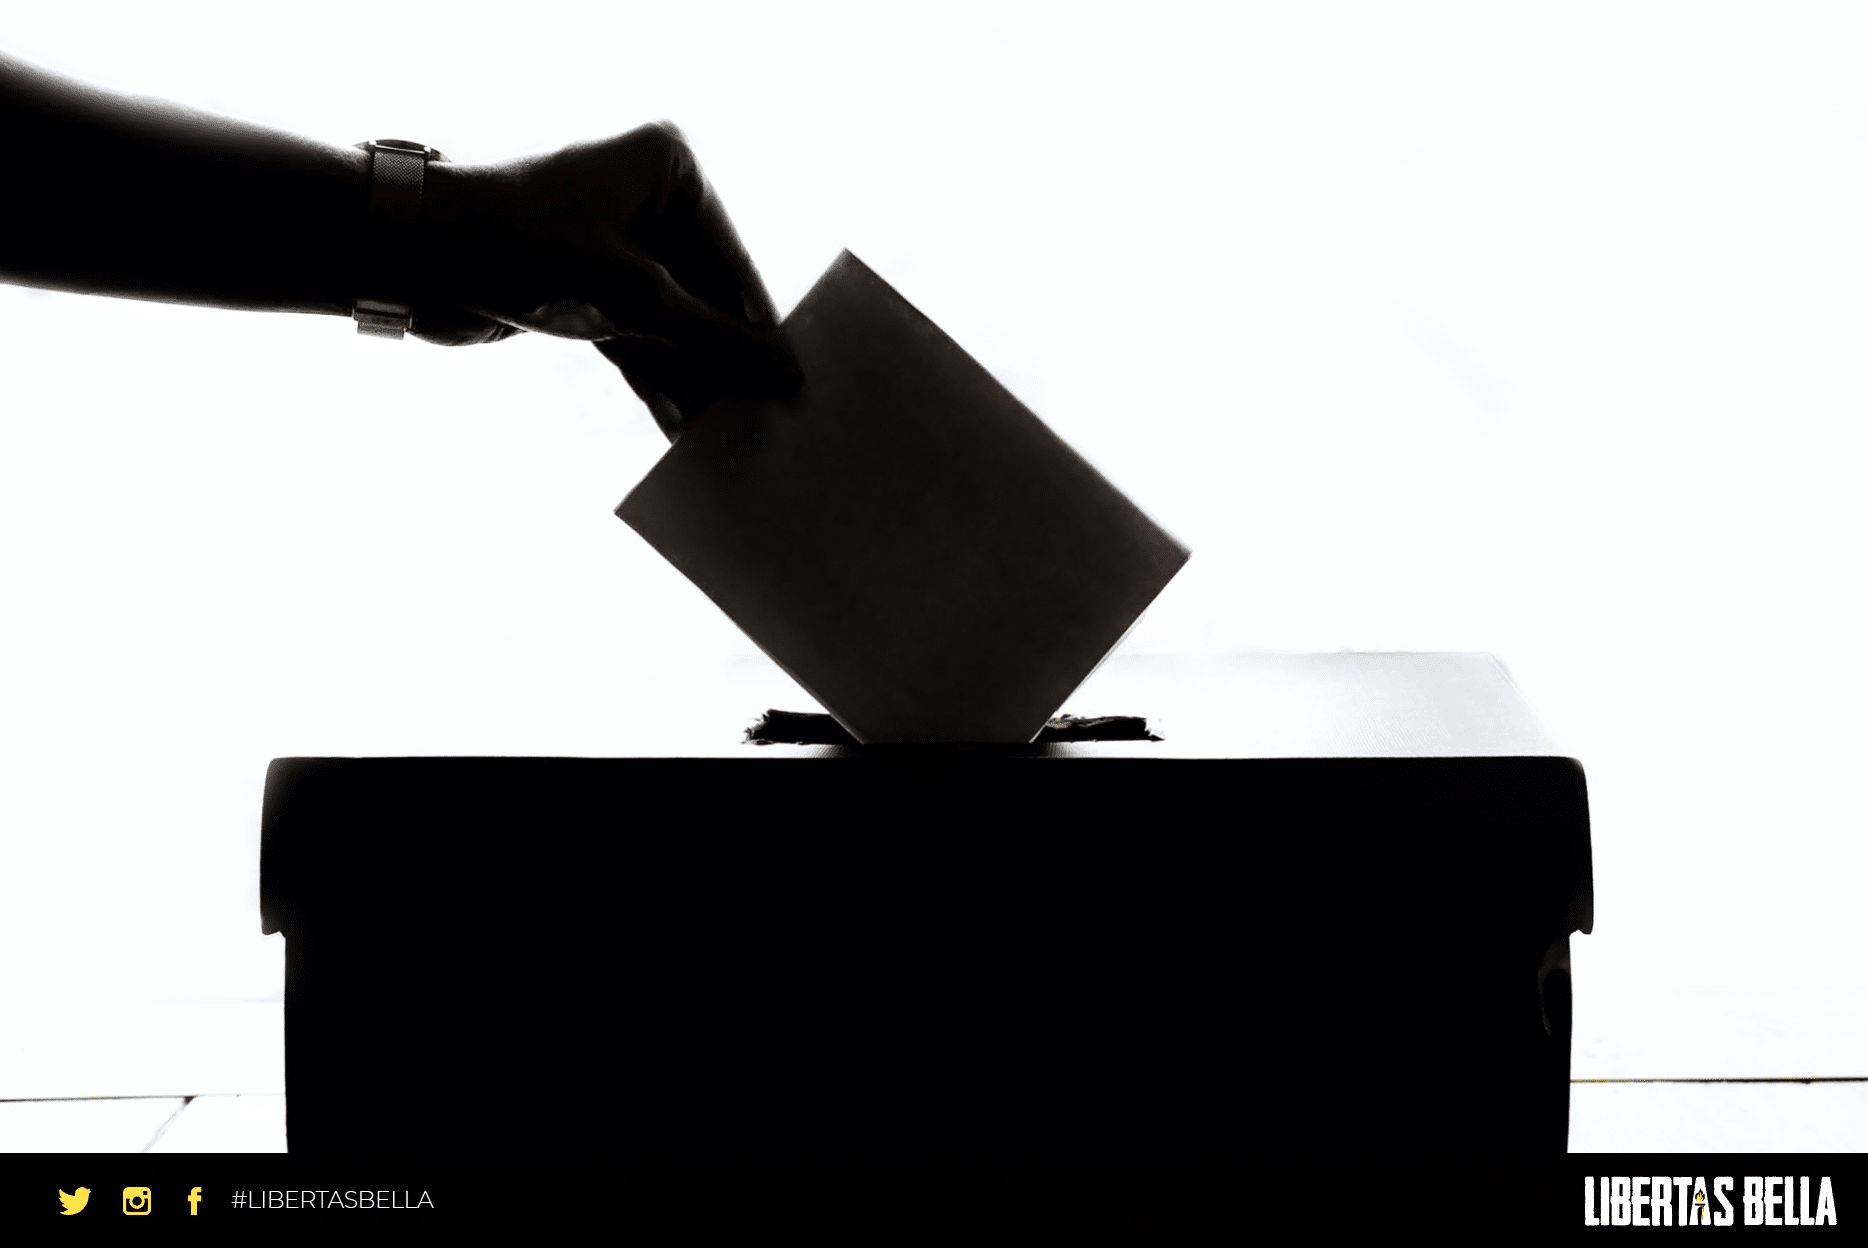 democracy quotes - grayscale hand placing a vote in a ballot box